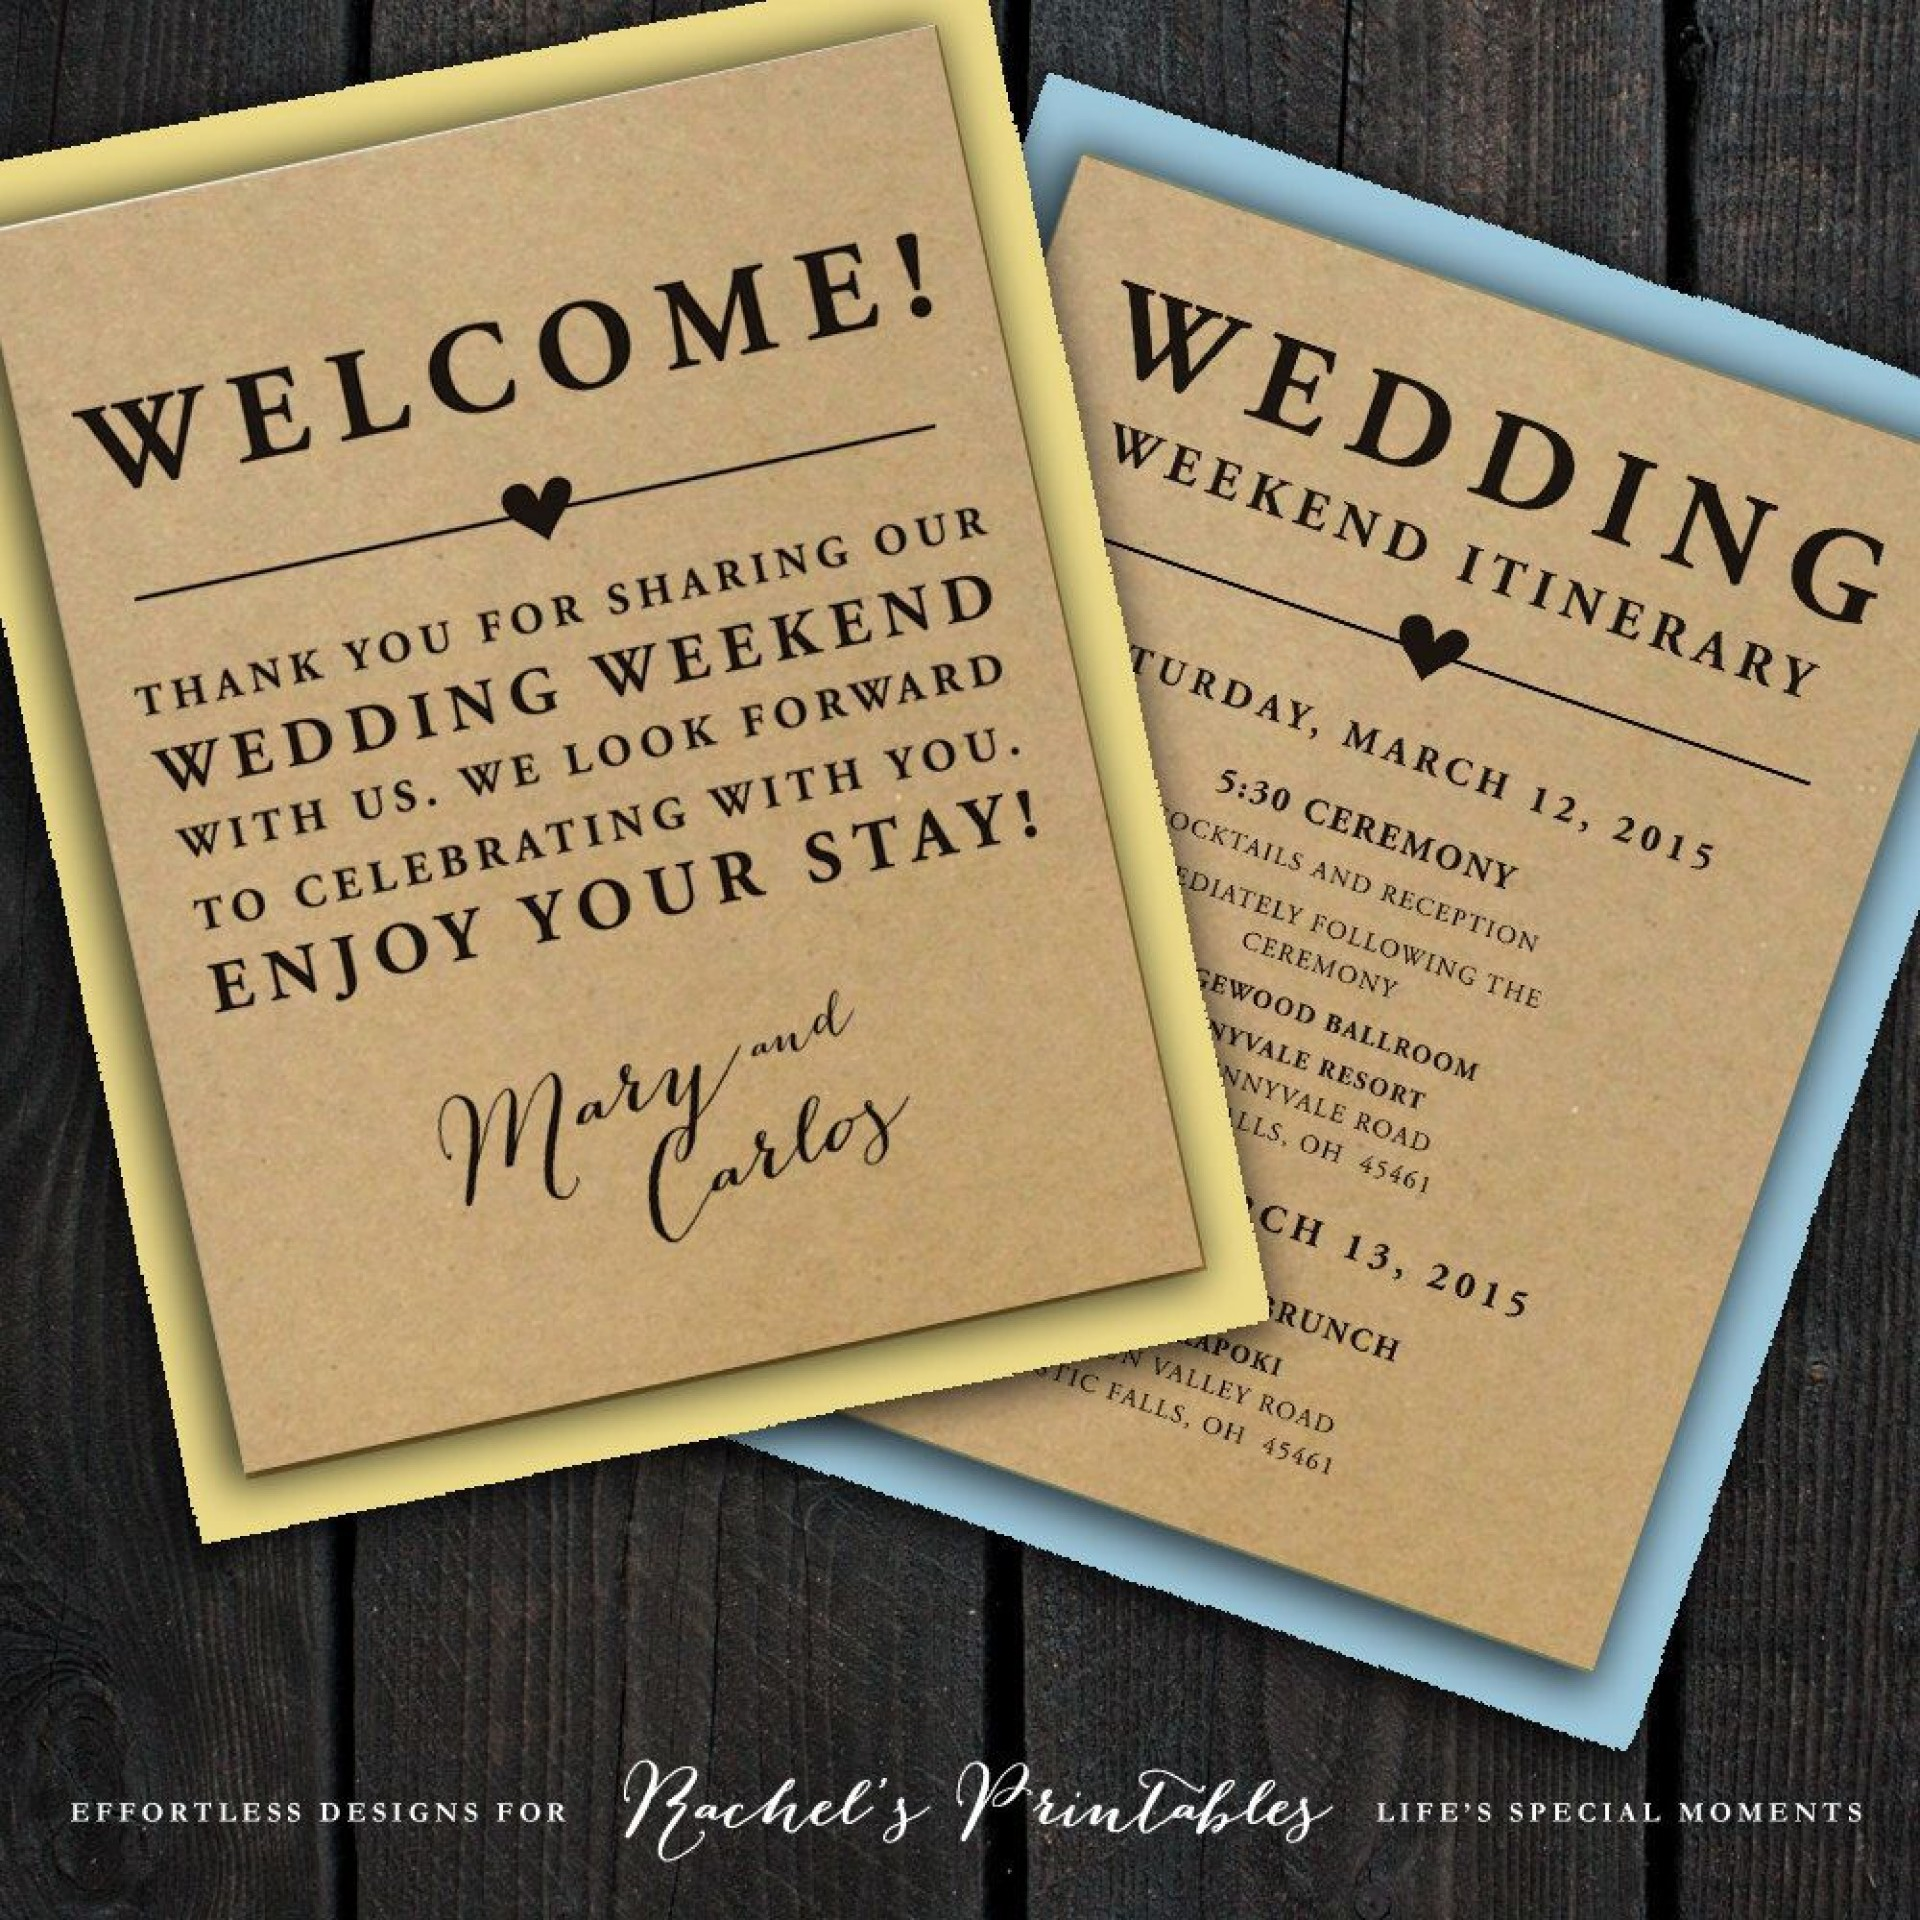 002 Unforgettable Wedding Welcome Bag Letter Template Photo  Free1920